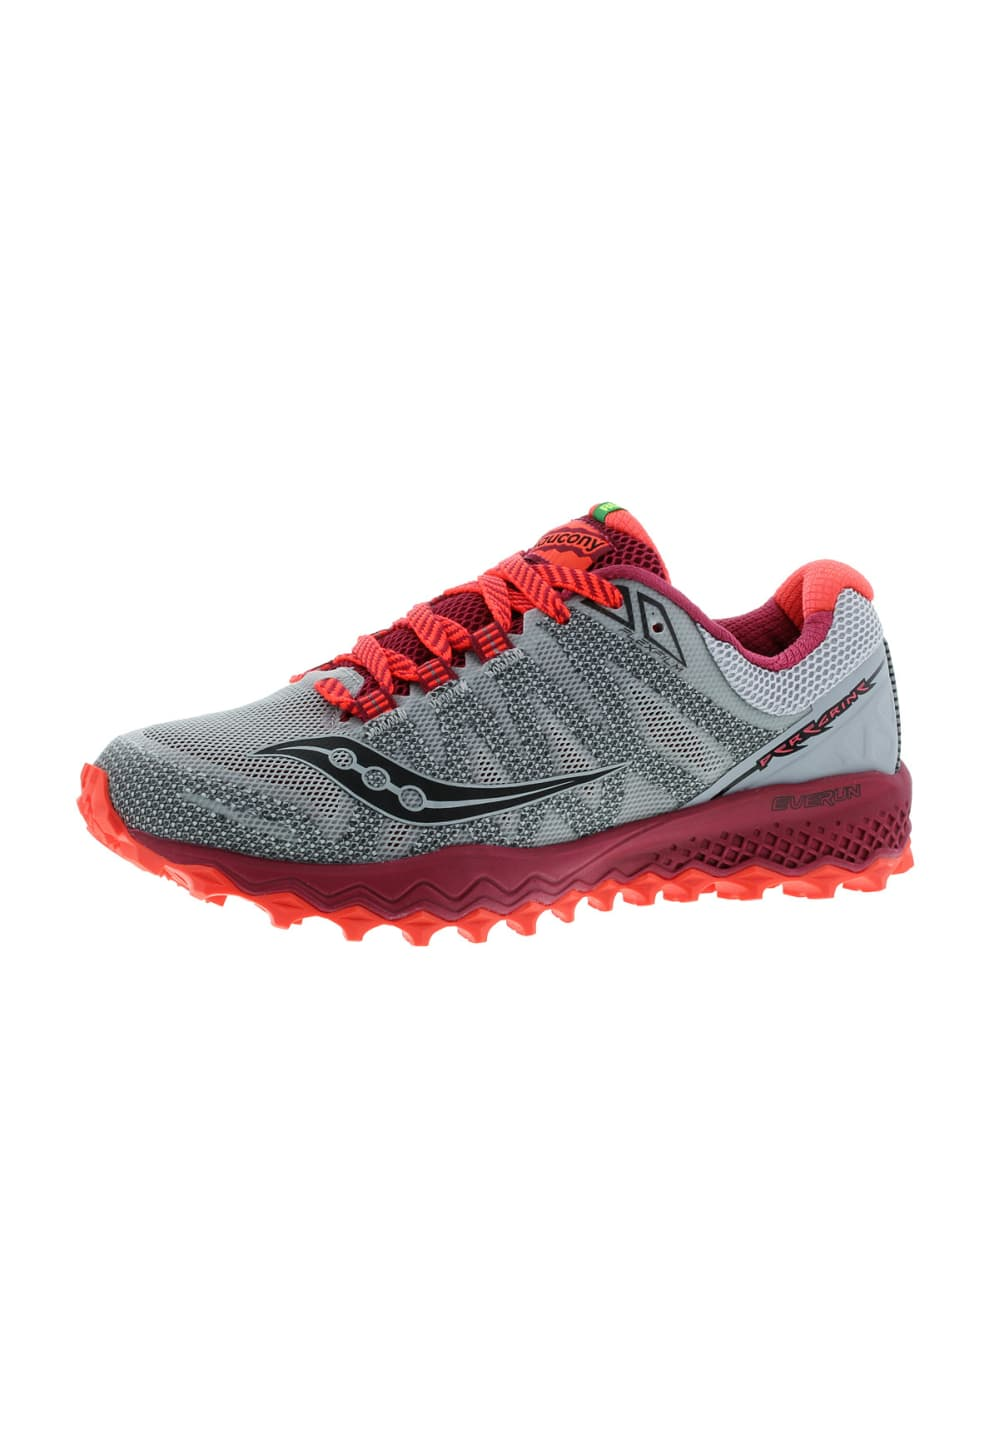 40cd3fe5b9d Next. -60%. Saucony. Peregrine 7 - Chaussures running pour Femme